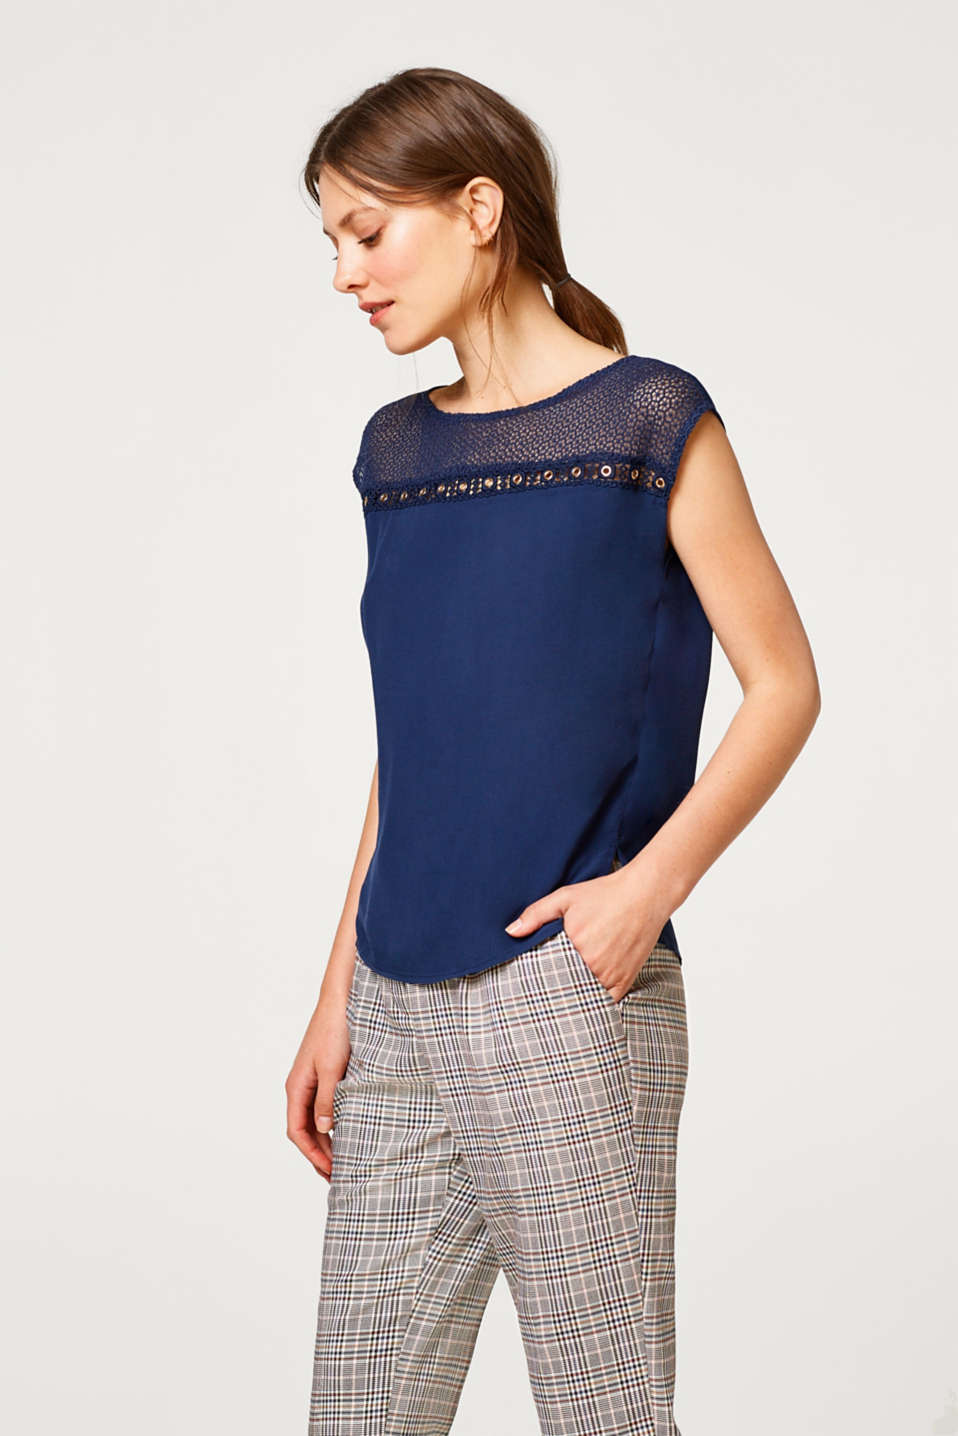 edc - Blouse top made of crêpe with lace trim